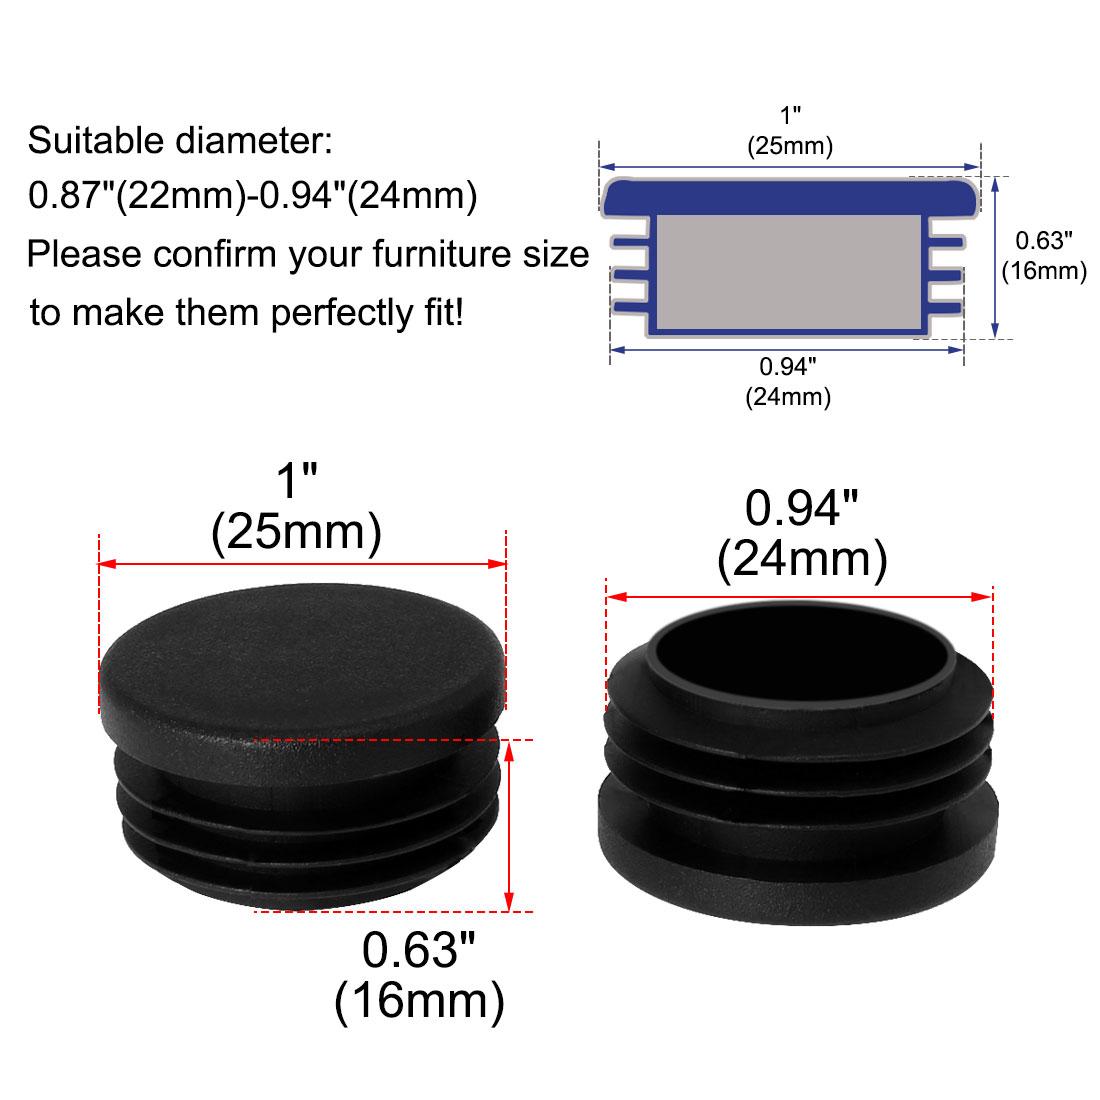 """Plastic Round Tube Insert Glide End Cap 25mm 1"""" OD 36pcs Protect Iron Desk Feet - image 6 of 7"""